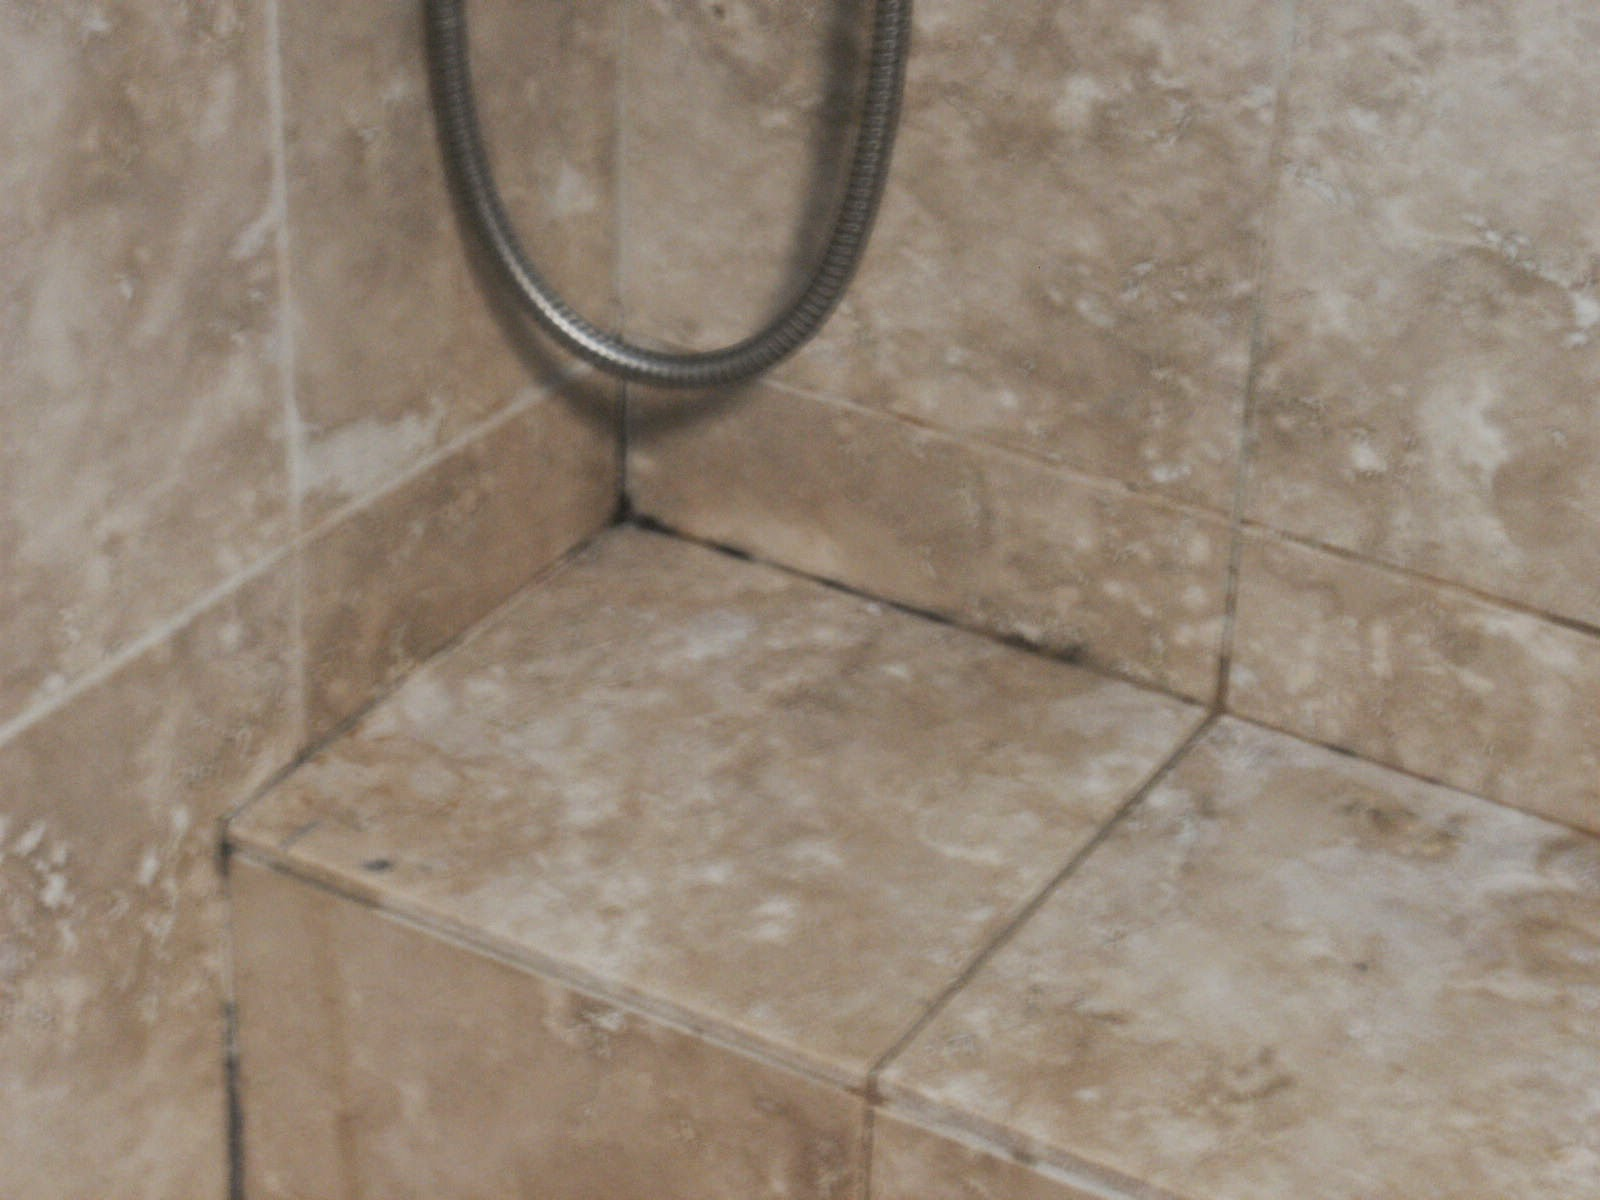 Black mold travertine tile revisit confessions of a tile setter black mold travertine tile revisit dailygadgetfo Gallery